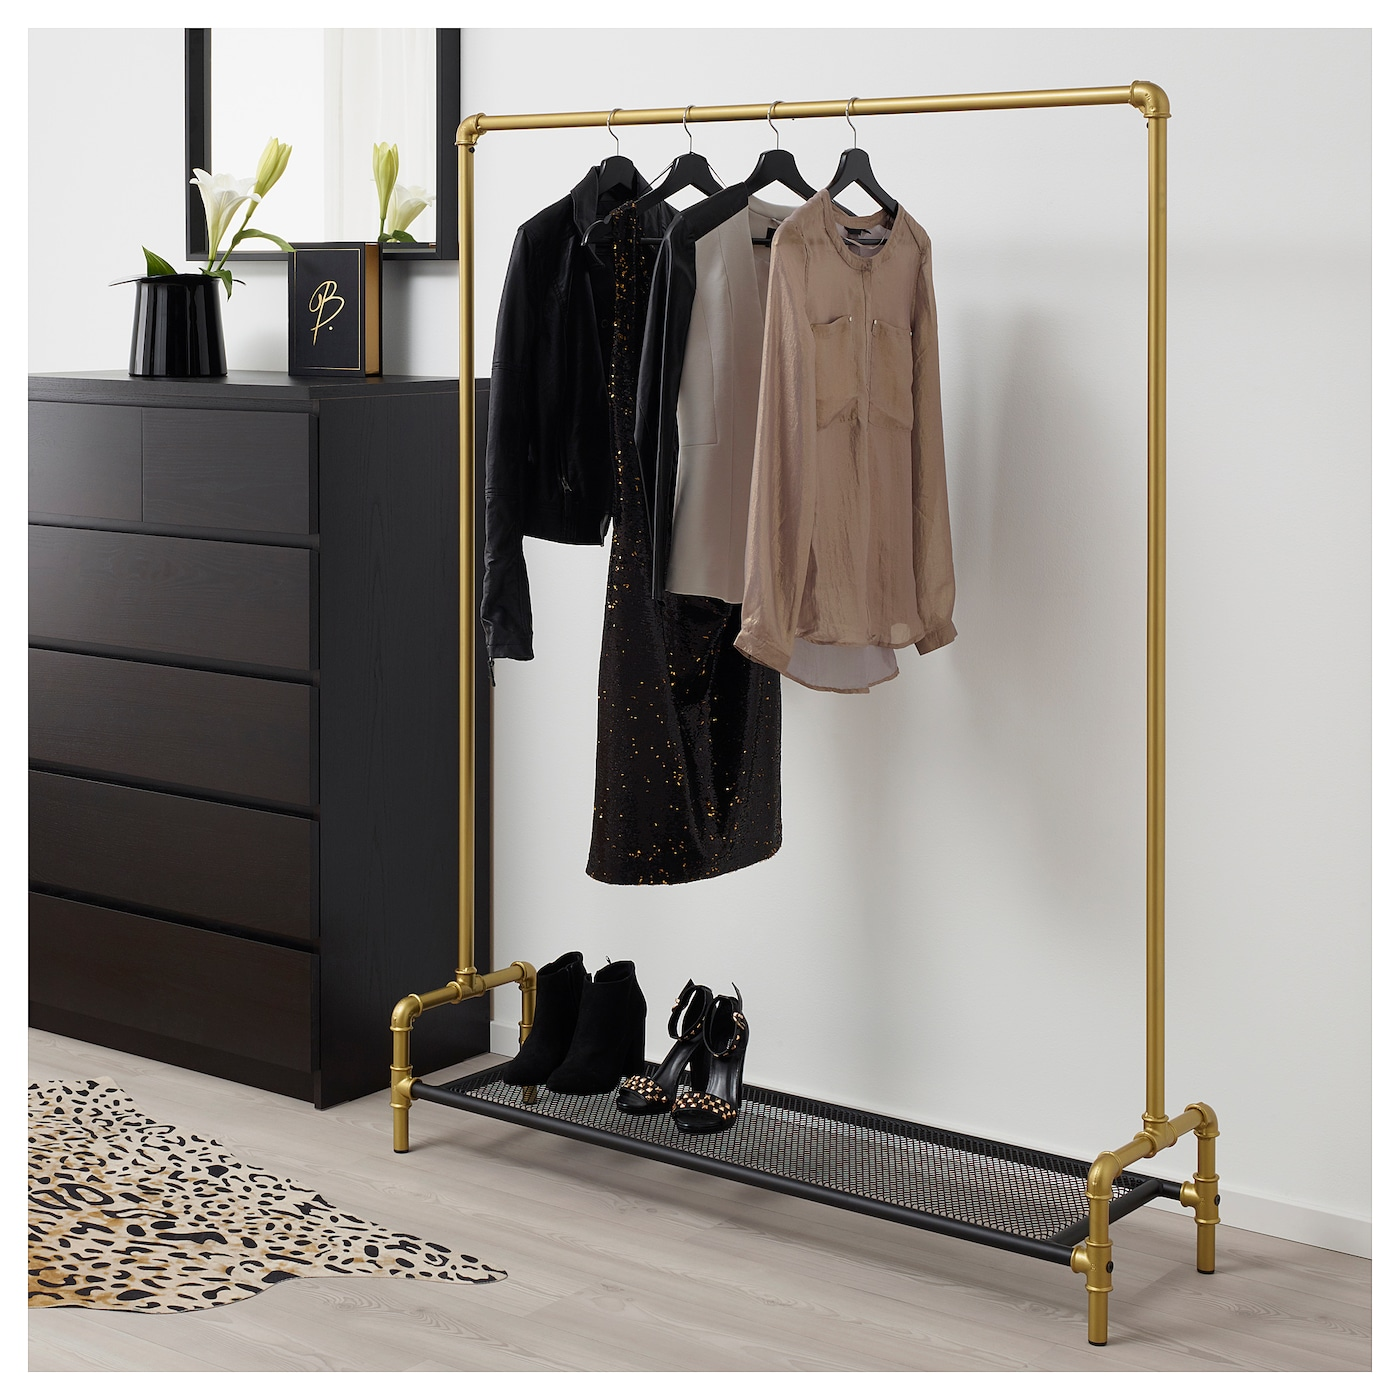 omedelbar clothes rack black/gold-colour 125x36 cm - ikea